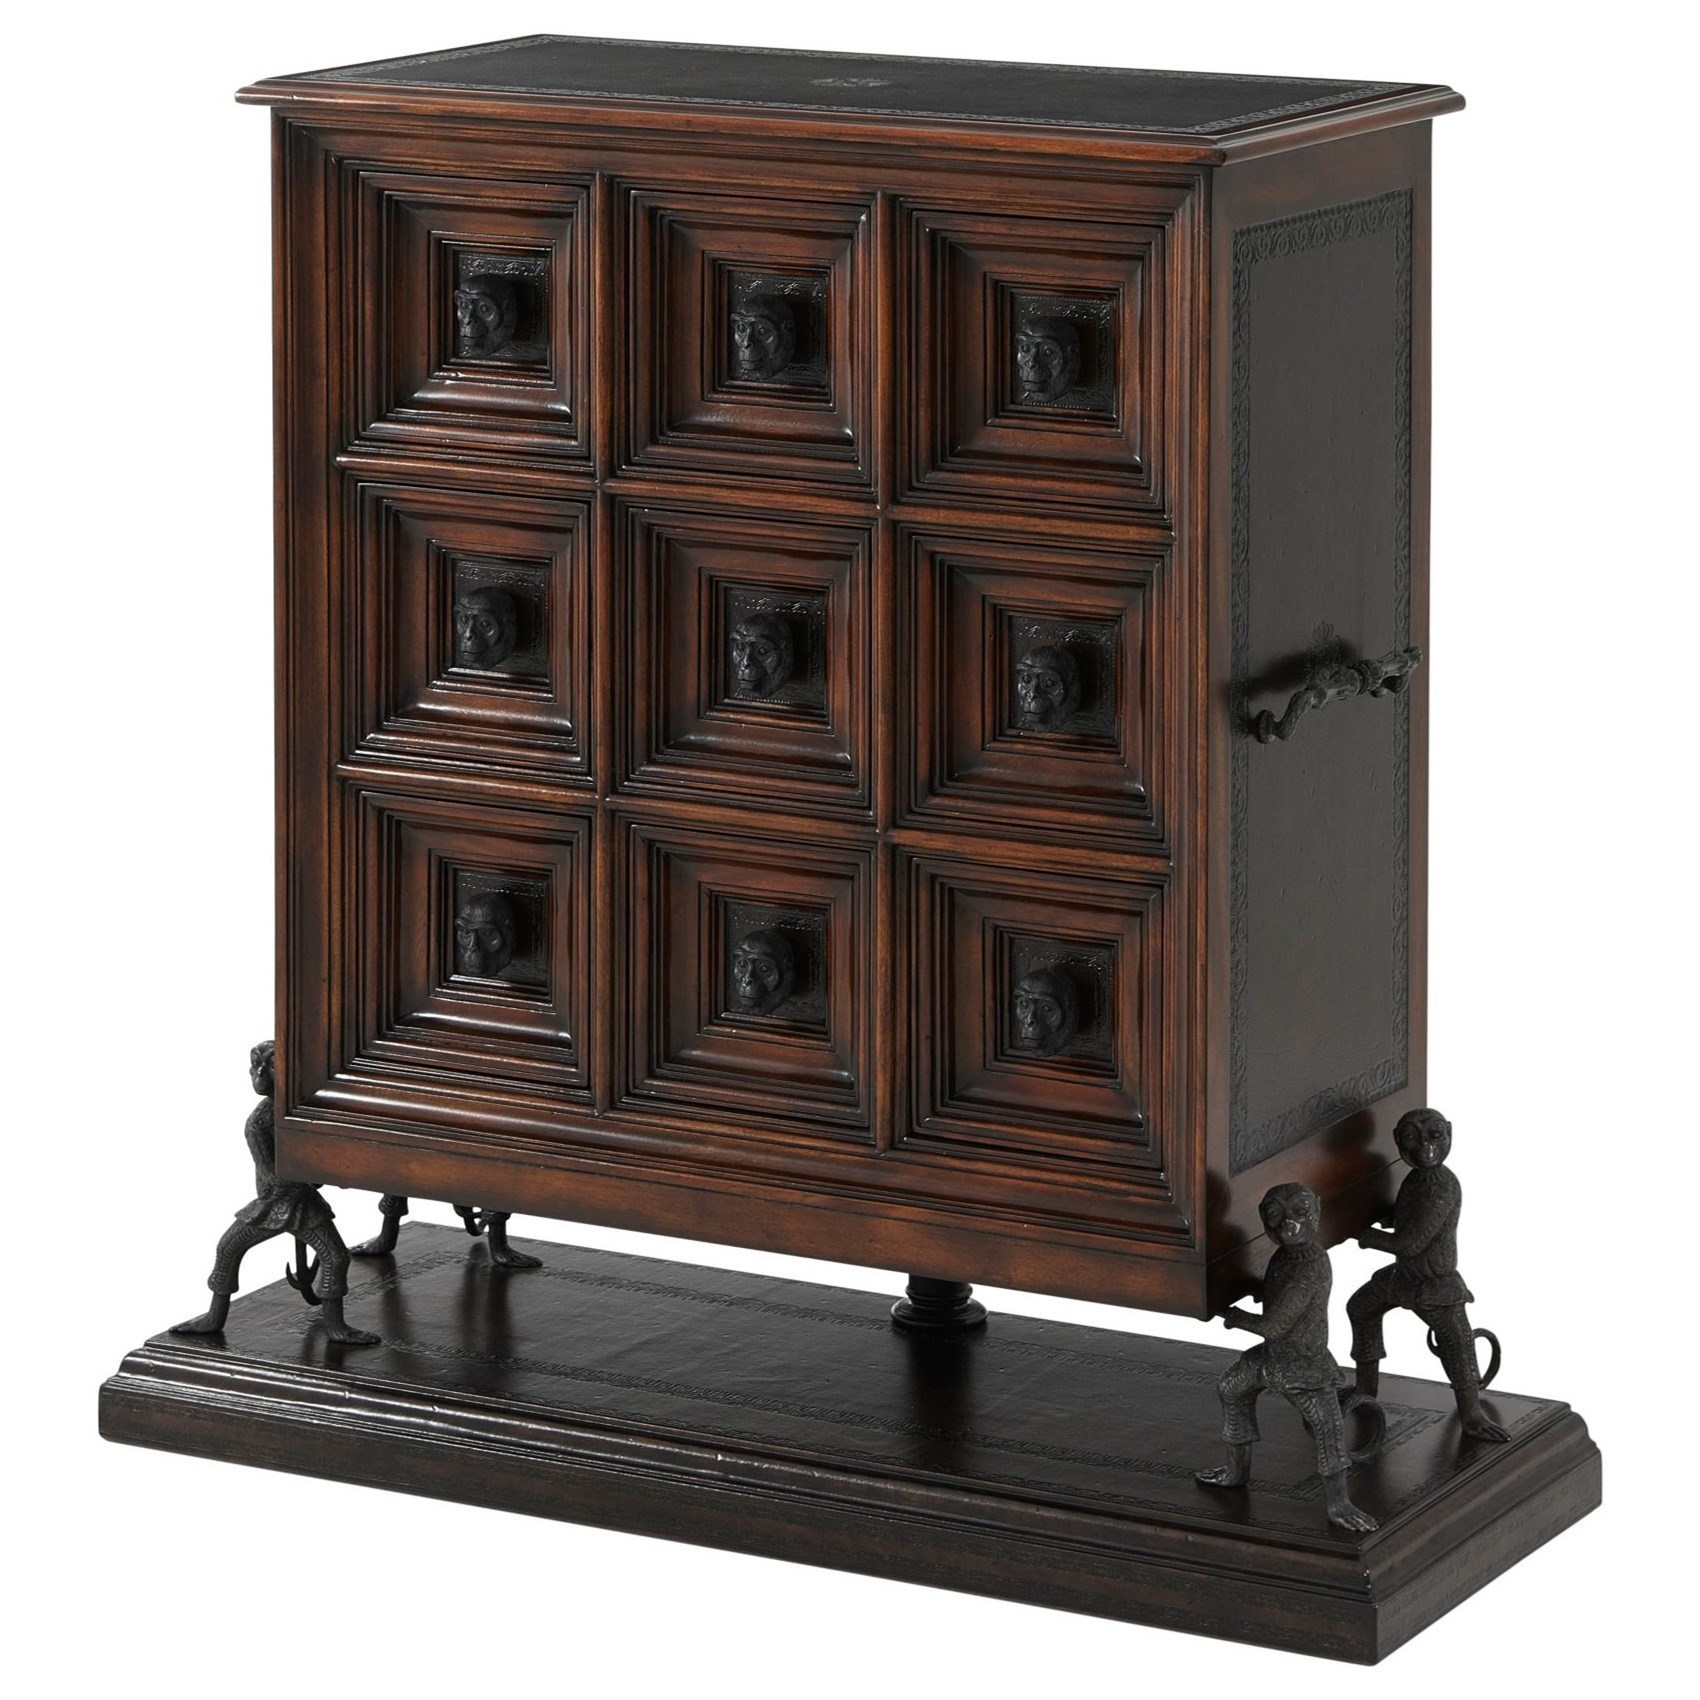 The Humorous Chest with Monkey Accents